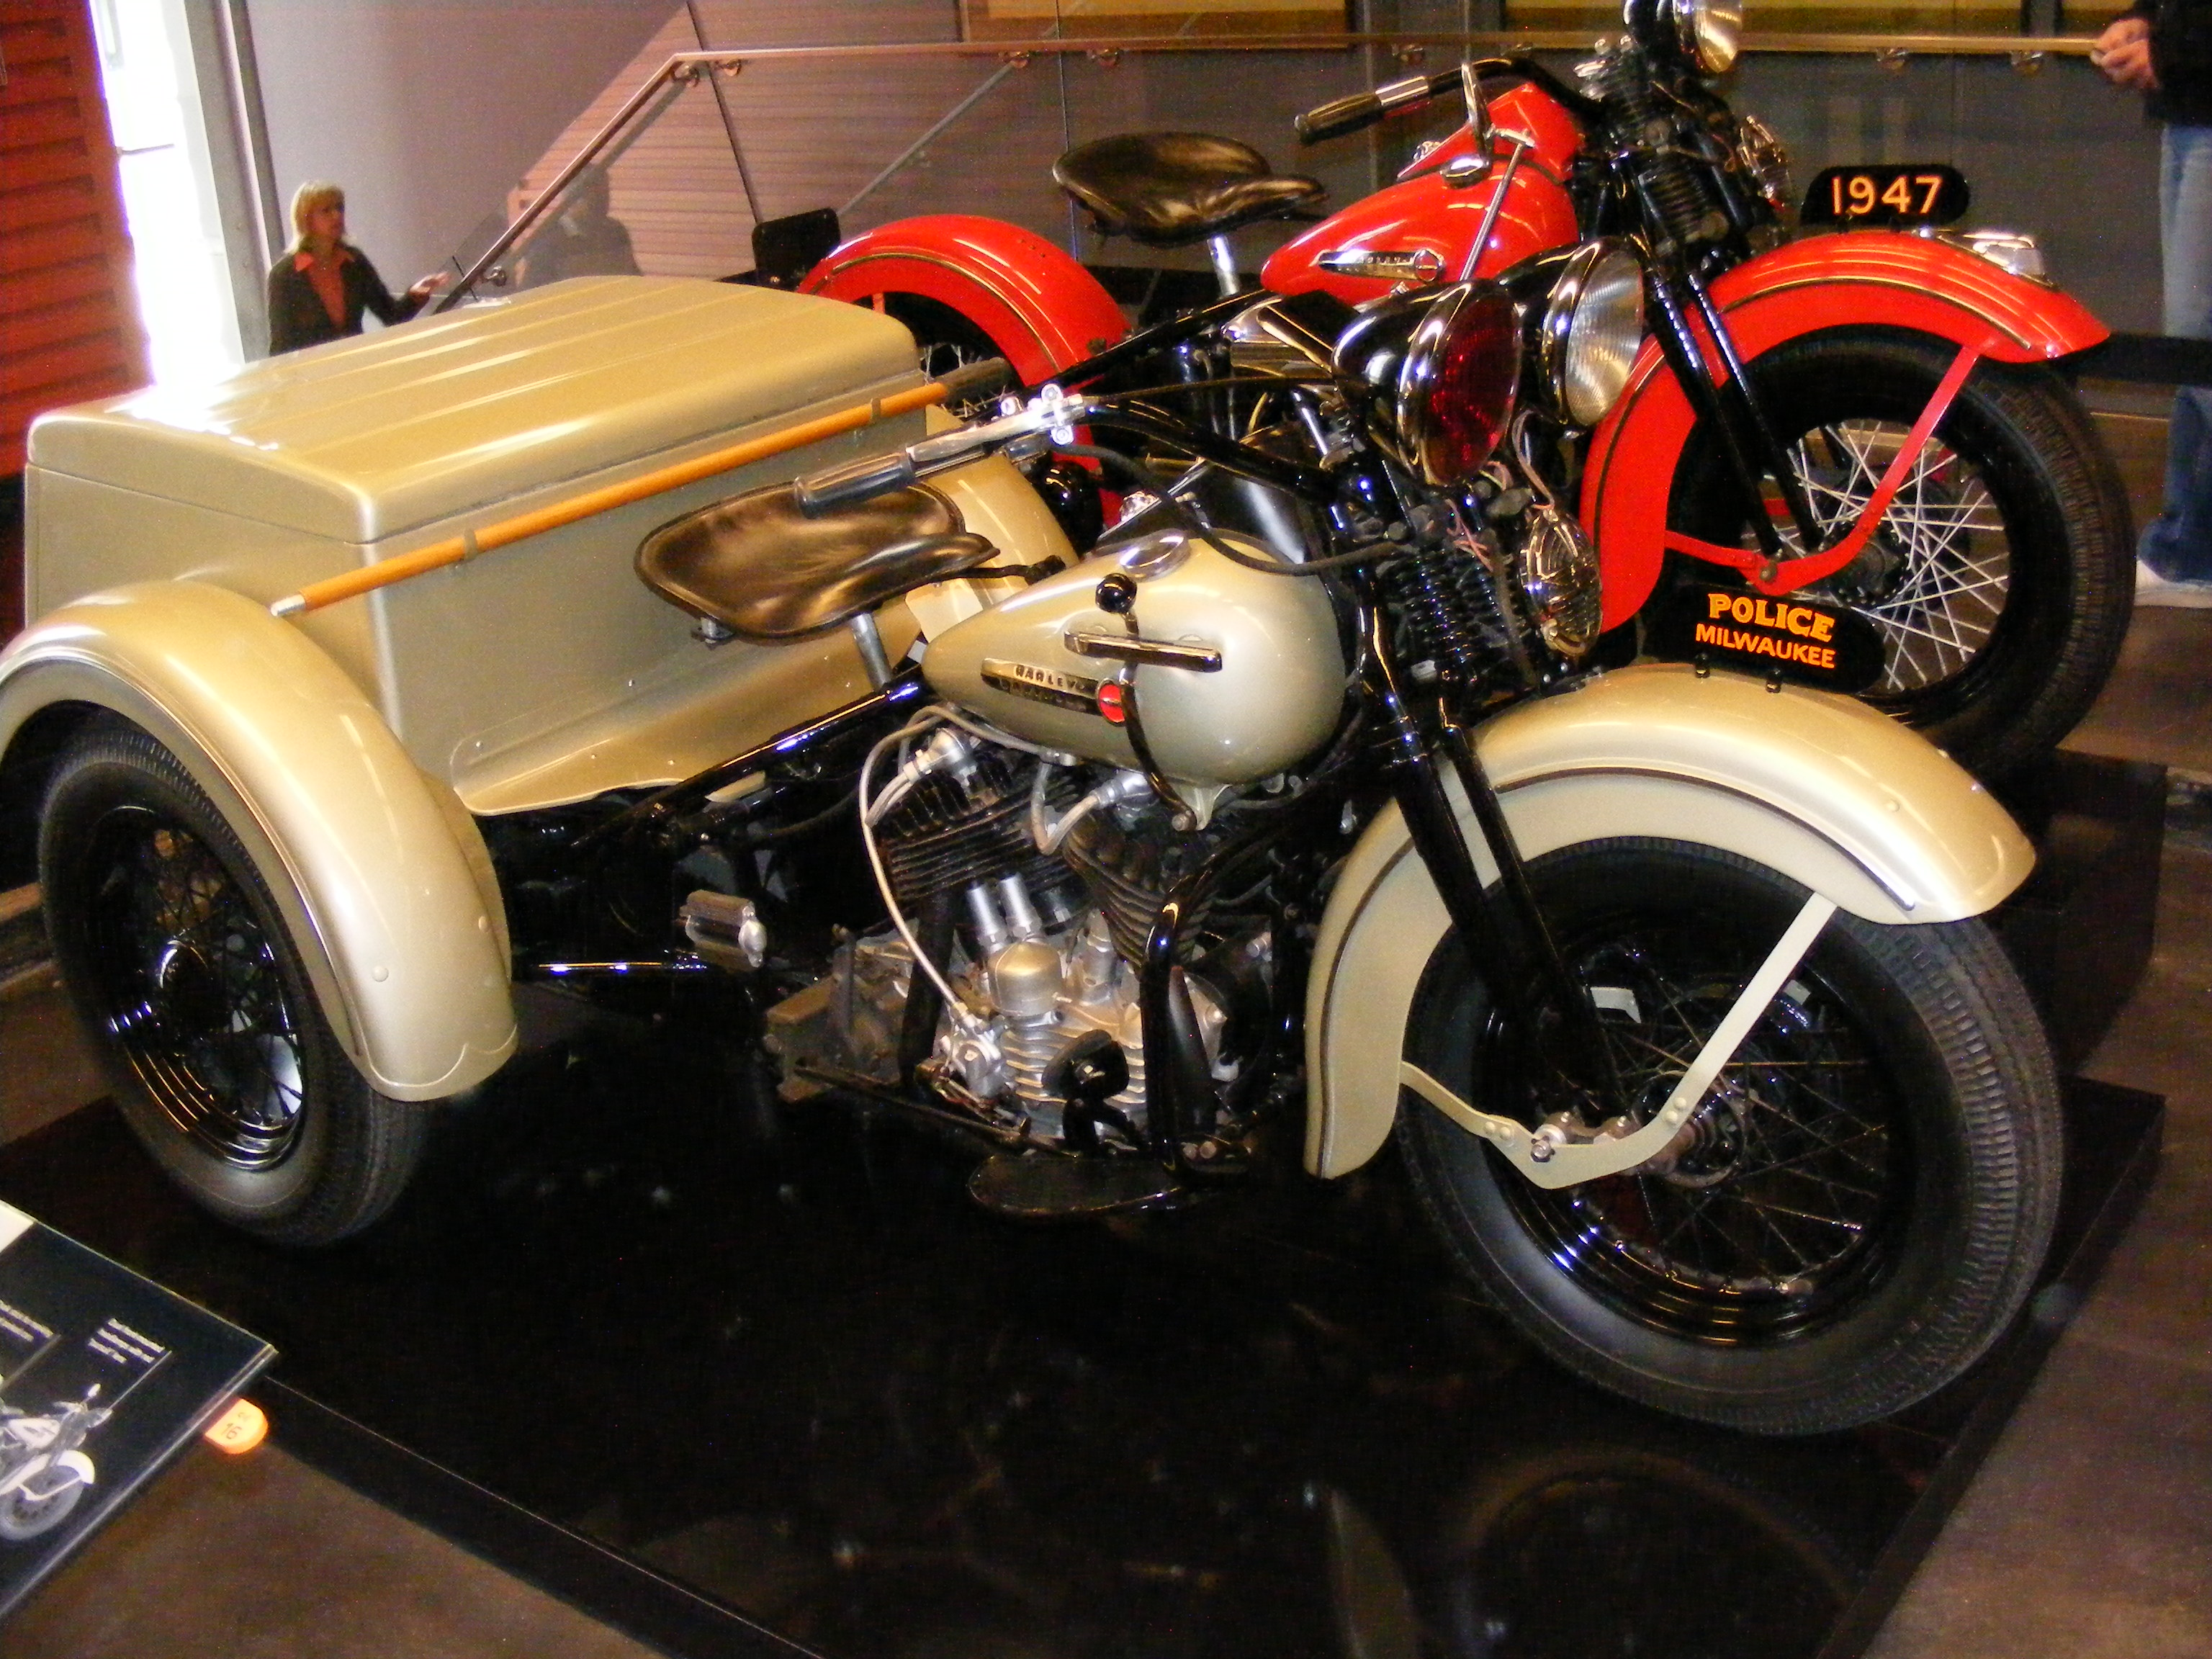 Click image for larger version  Name:Harley Musium 060.jpg Views:88 Size:1.42 MB ID:66689